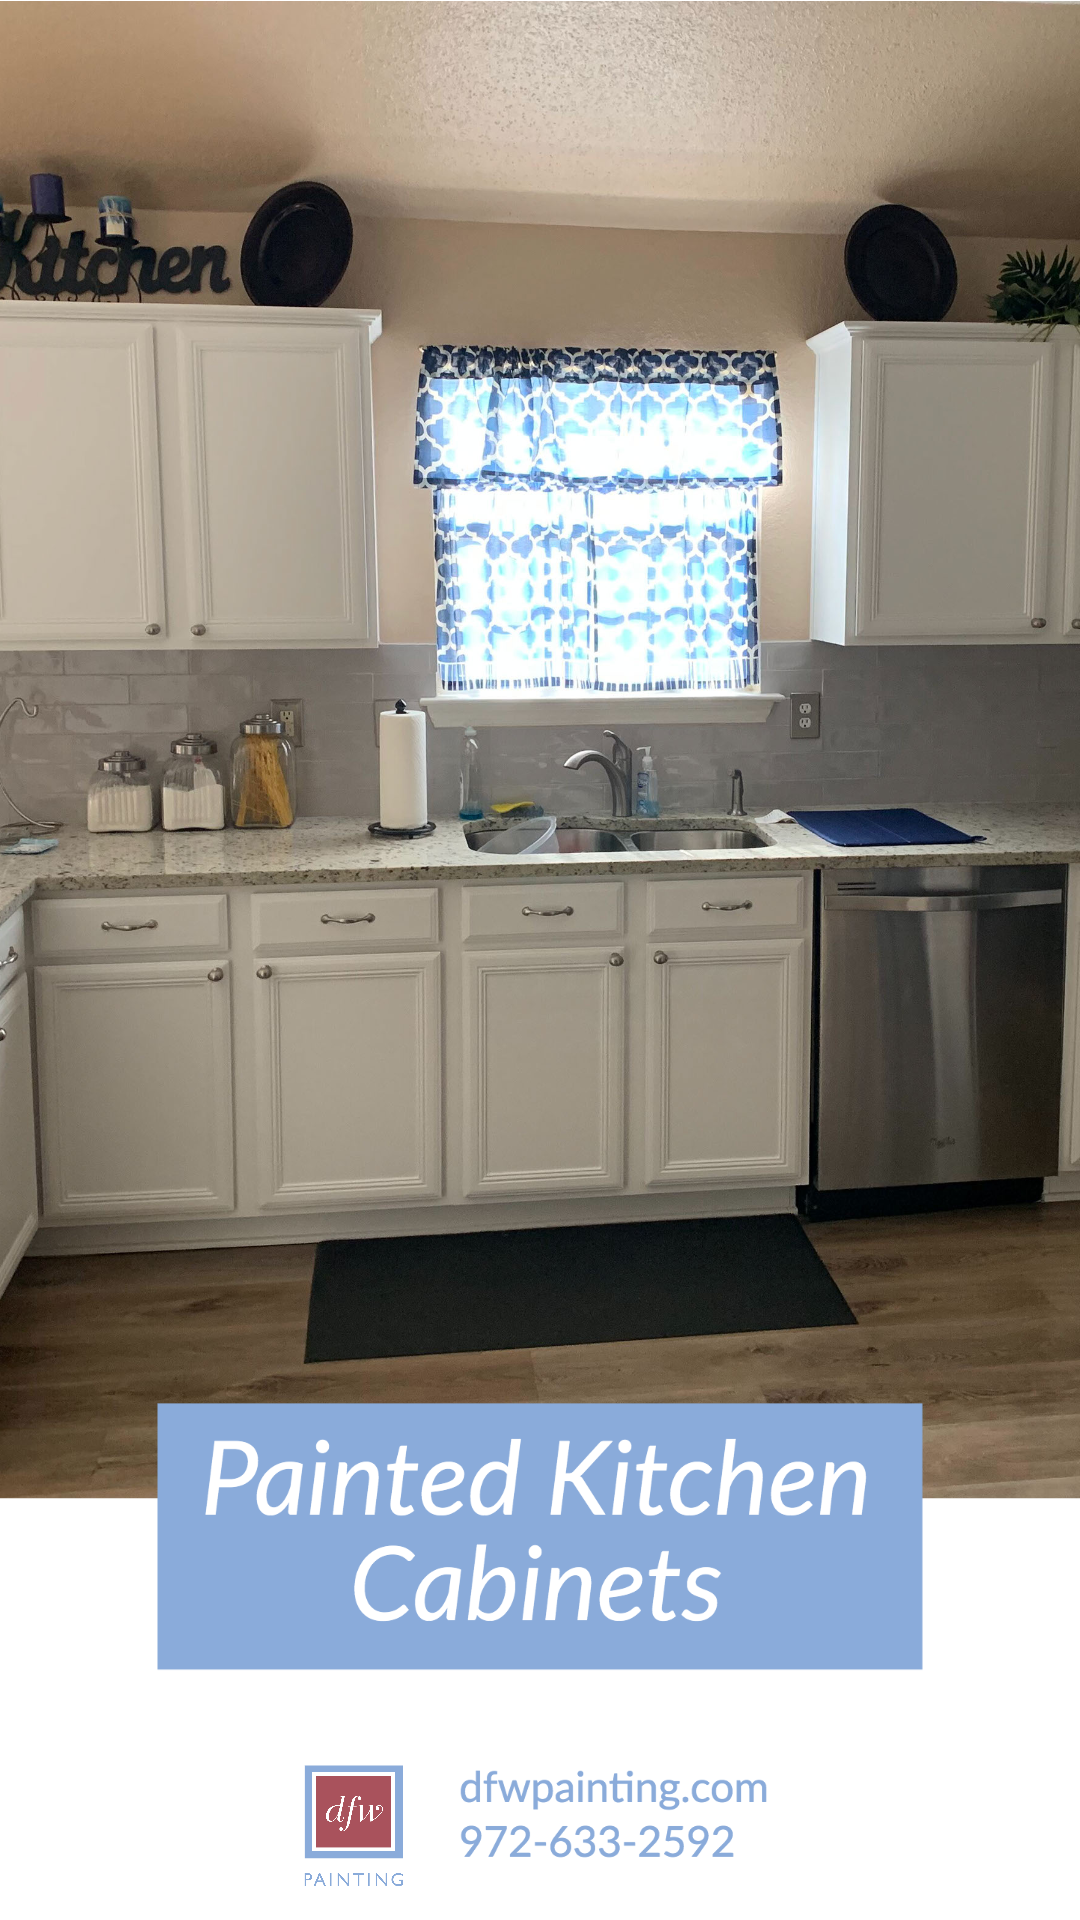 White Painted Kitchen Cabinets Dfw Painting In 2020 Painting Kitchen Cabinets Kitchen Cabinets Kitchen Paint